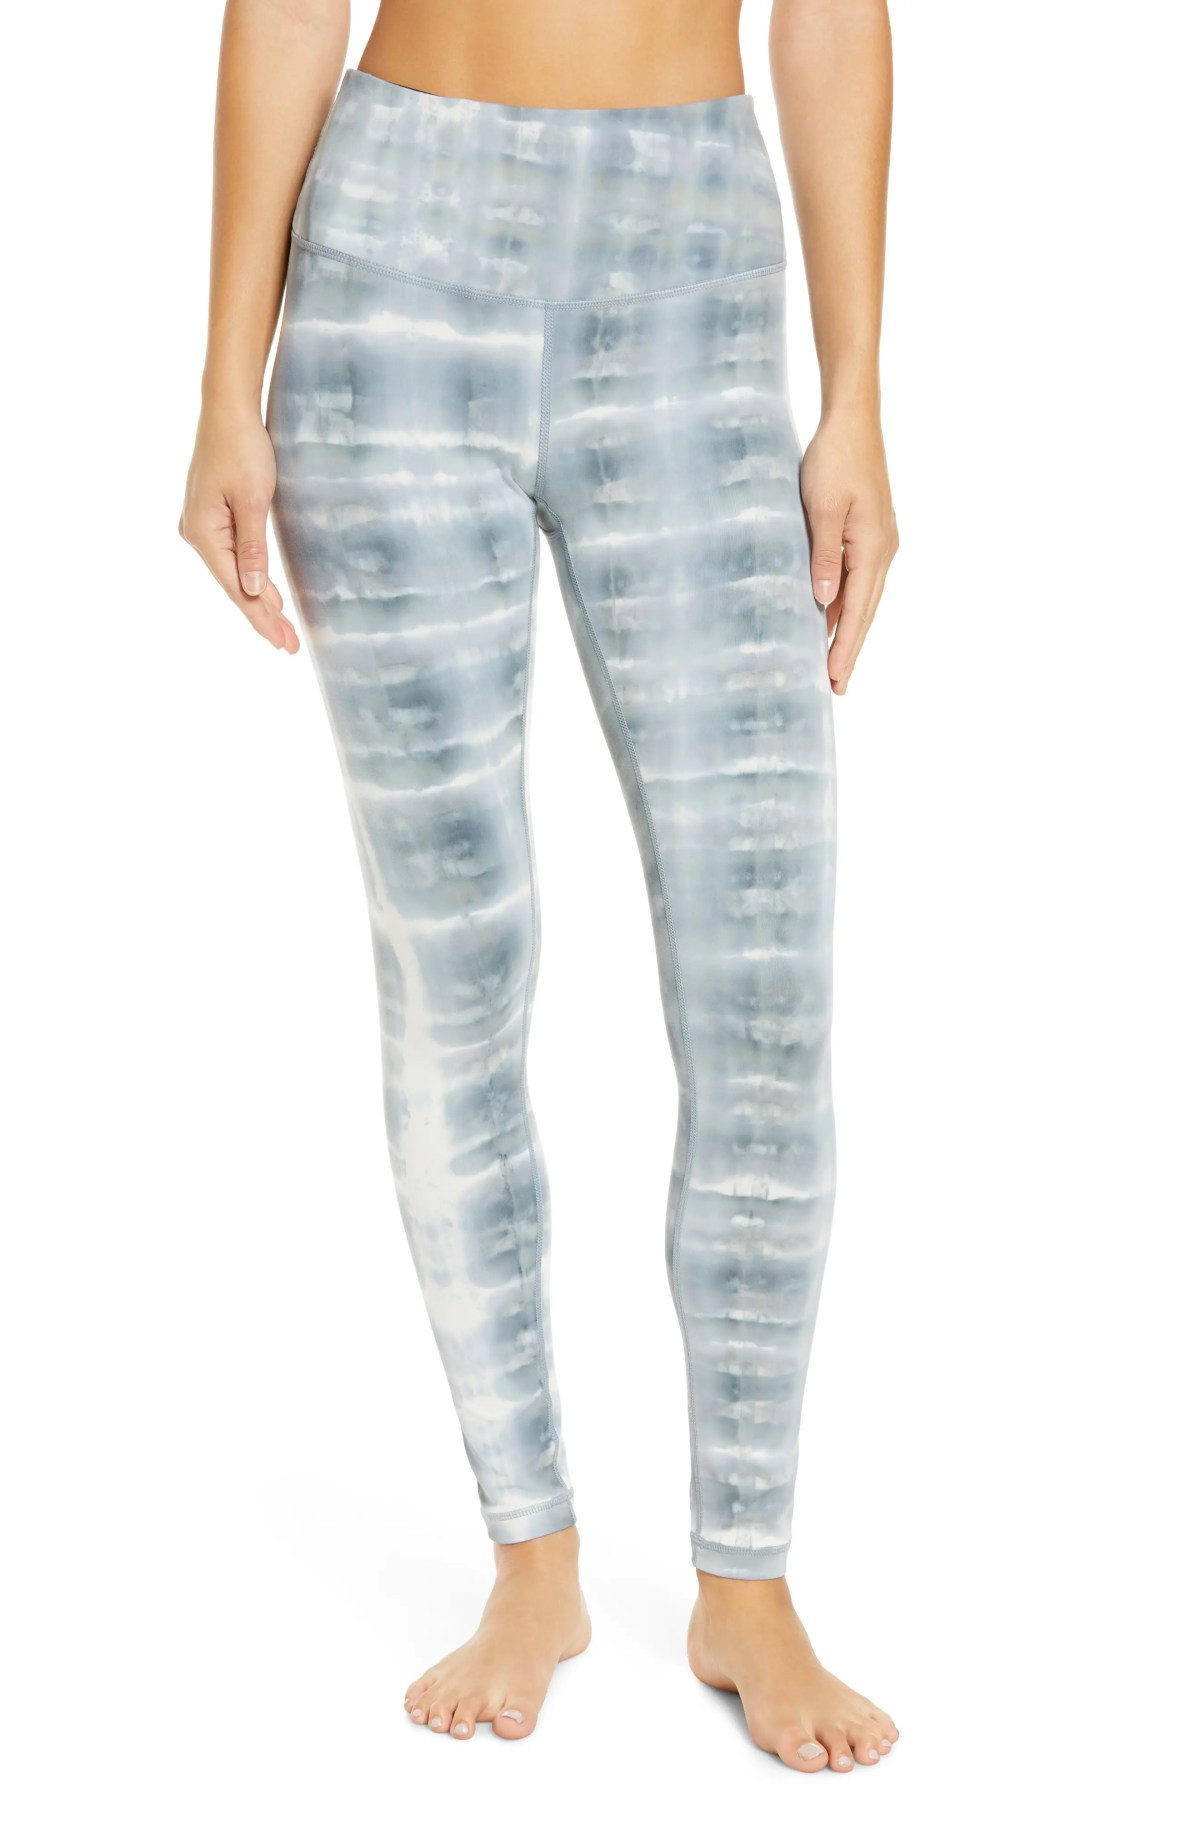 ZELLA Spray Dye High Waist Leggings, Main, color, BLUE WEATHER